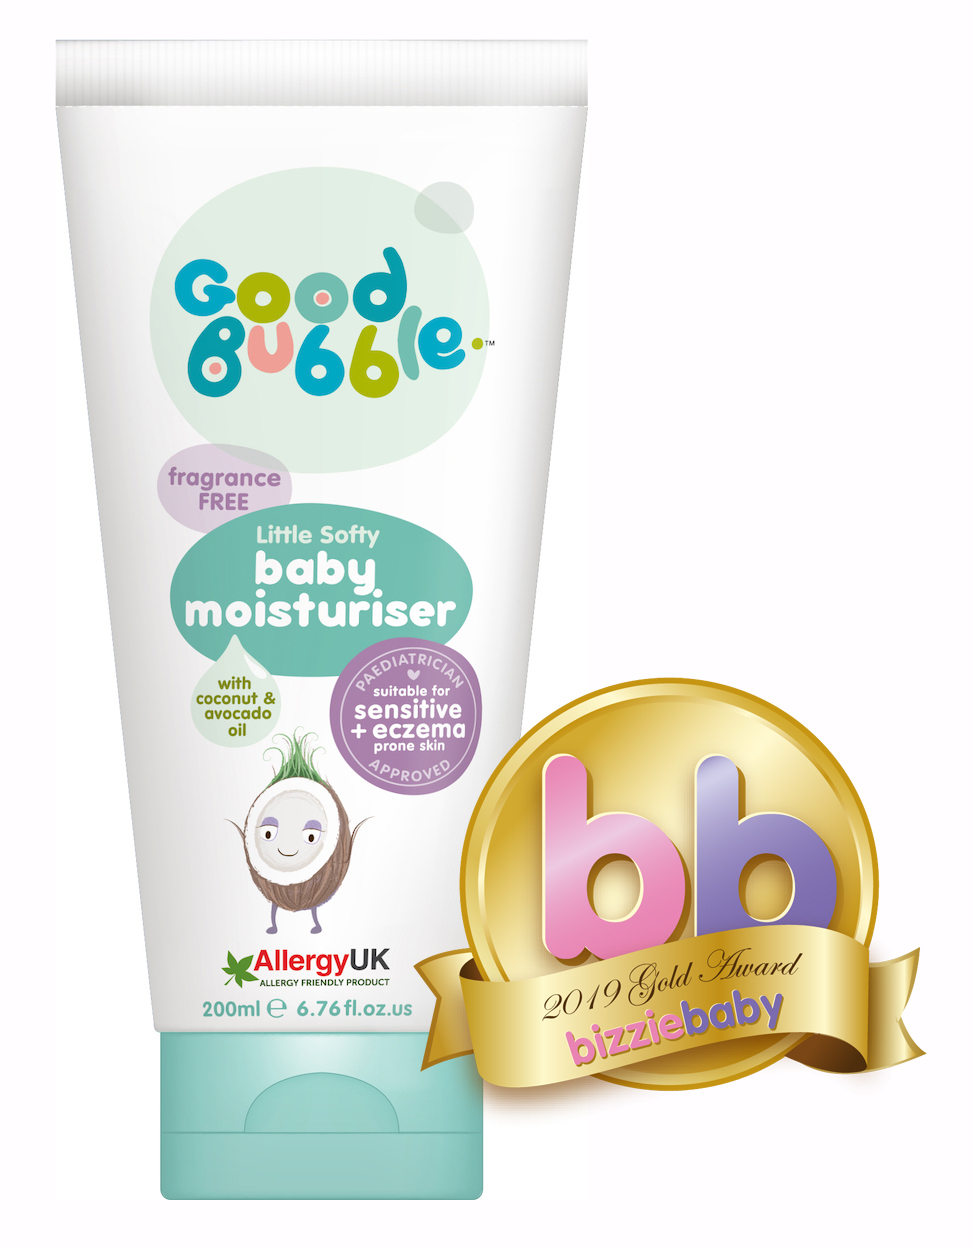 https://goodbubble.co.uk/uploads/files/littlesoftymoisturiser-award.jpg